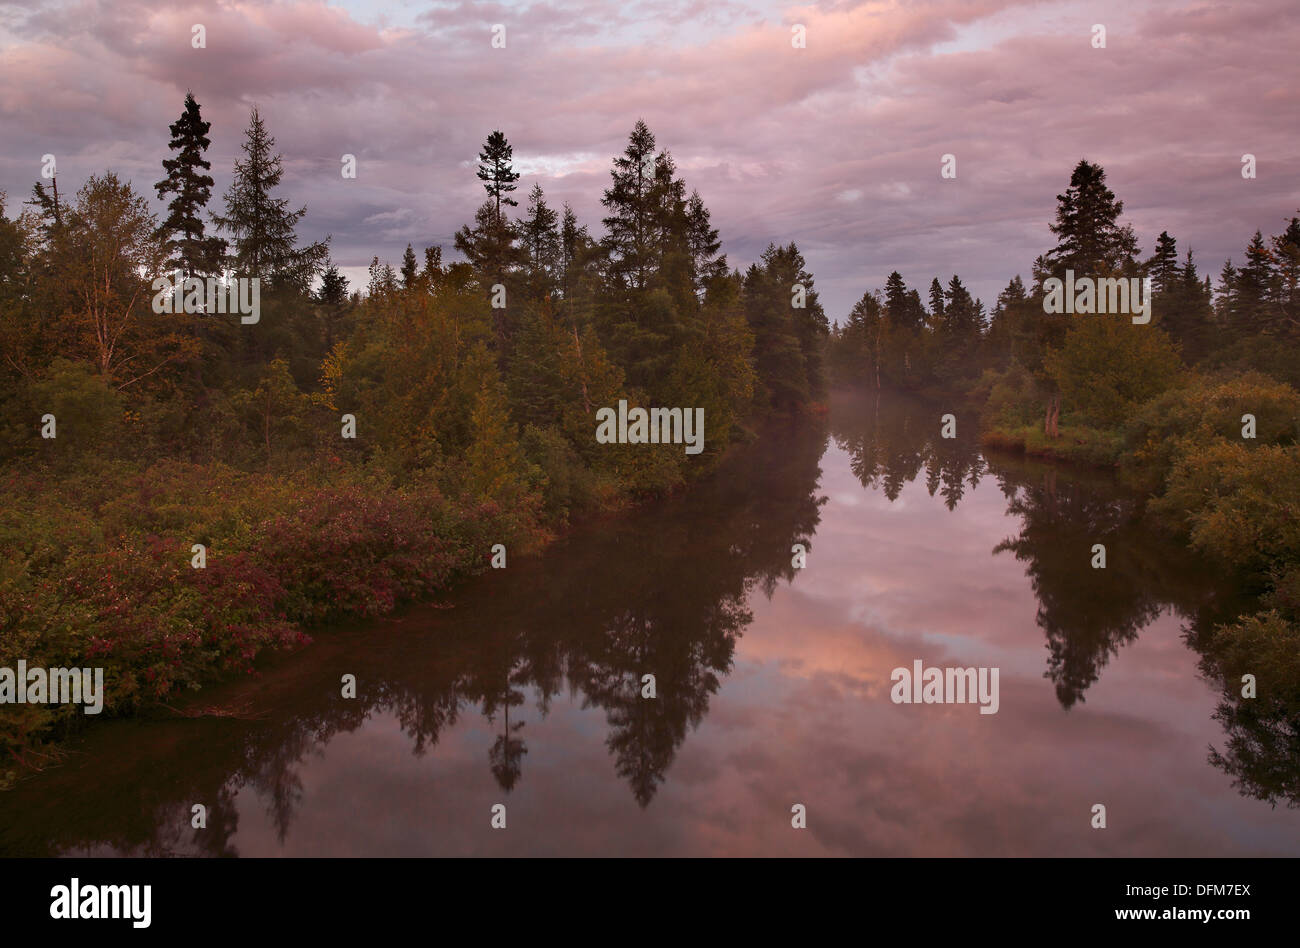 Trees and clouds reflected in a calm river, Gaspé Peninsula, Québec, Canada - Stock Image